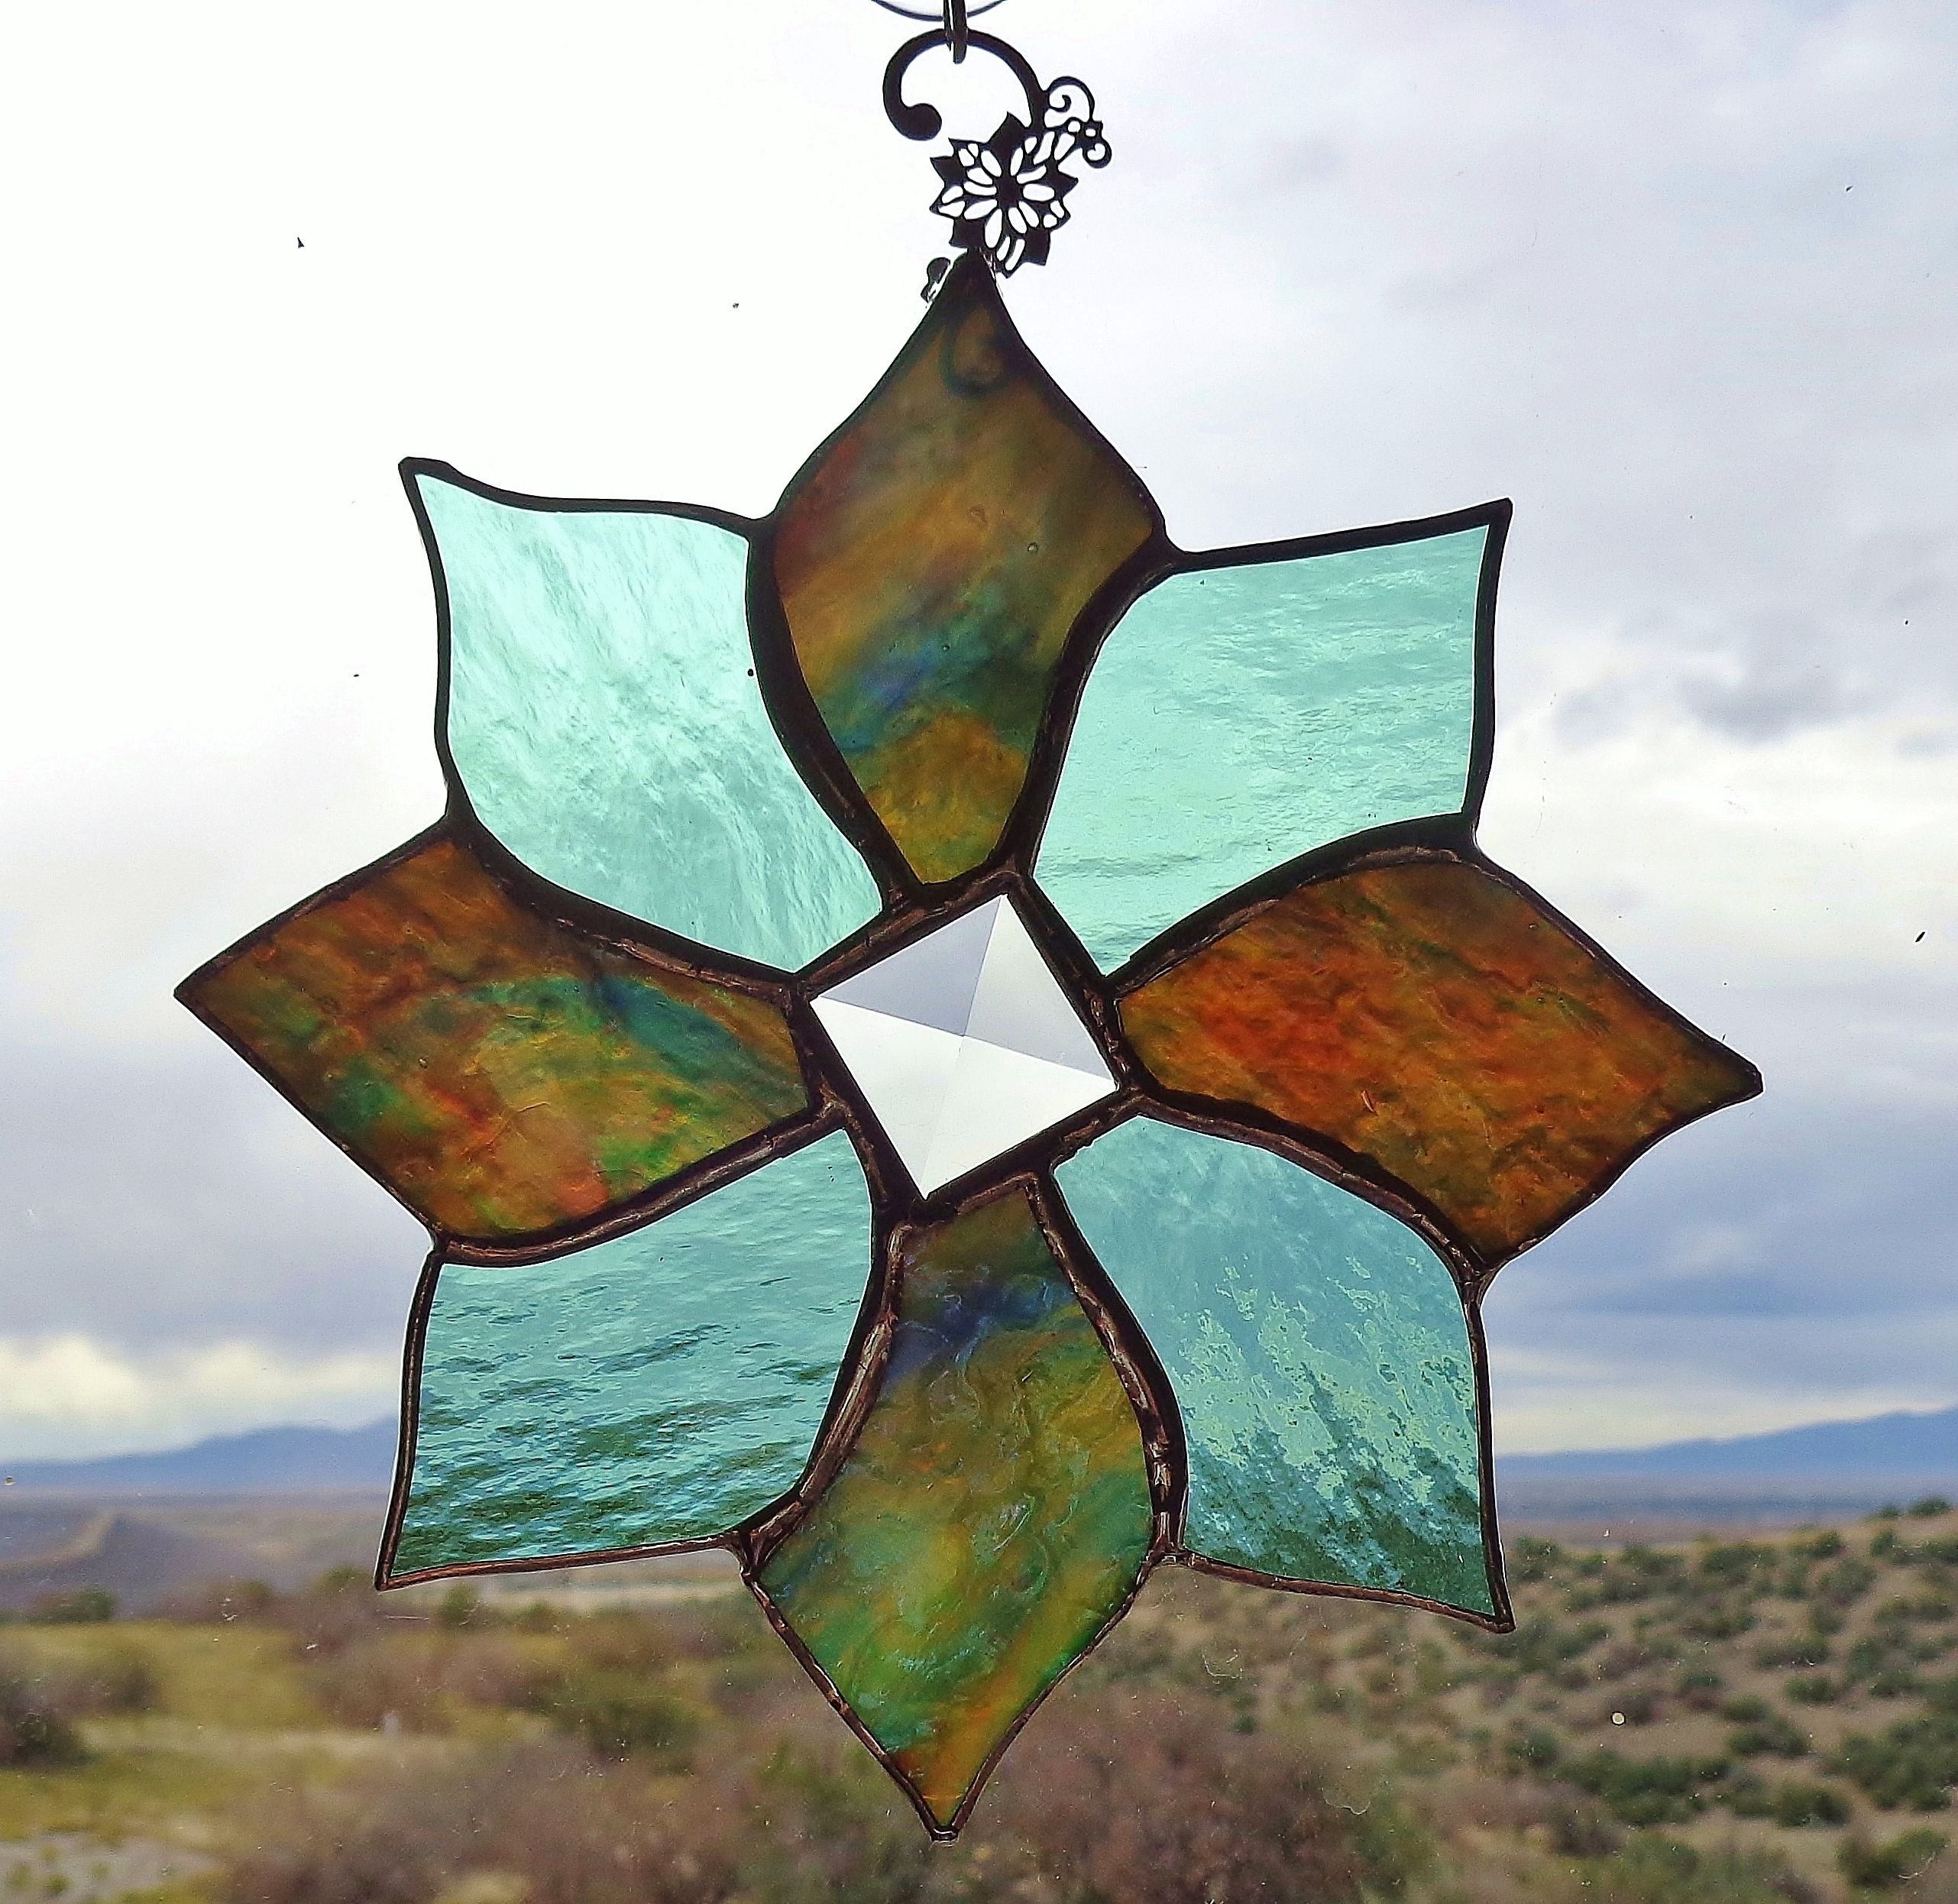 Buy Hand Made Stained Glass Ornaments Made To Order From